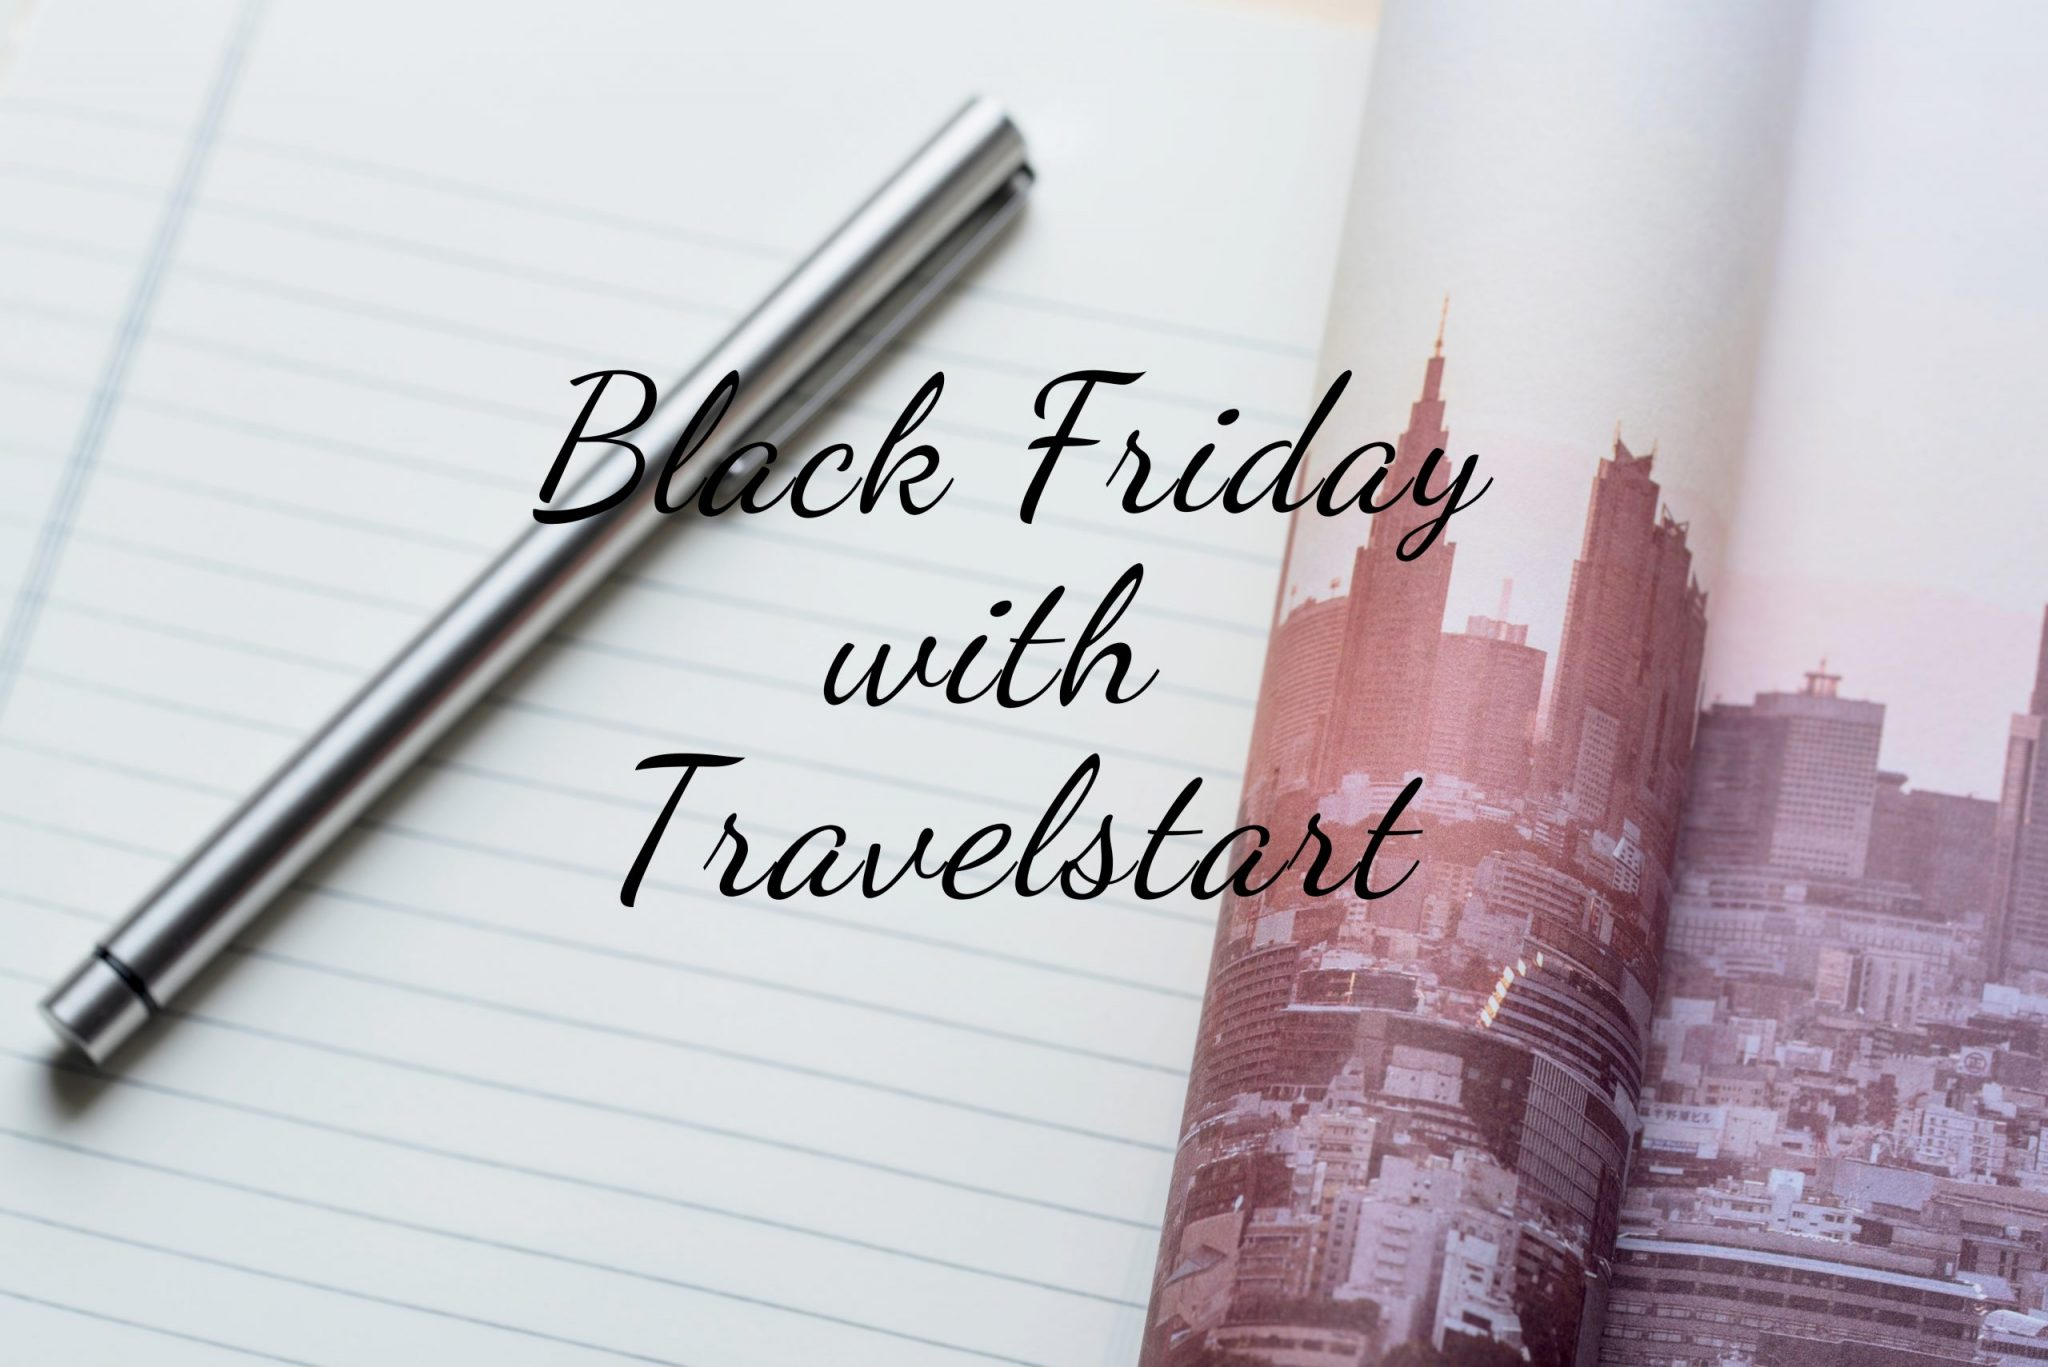 Affordable travel with Travelstart #BlackFlyday, Sugar & Spice